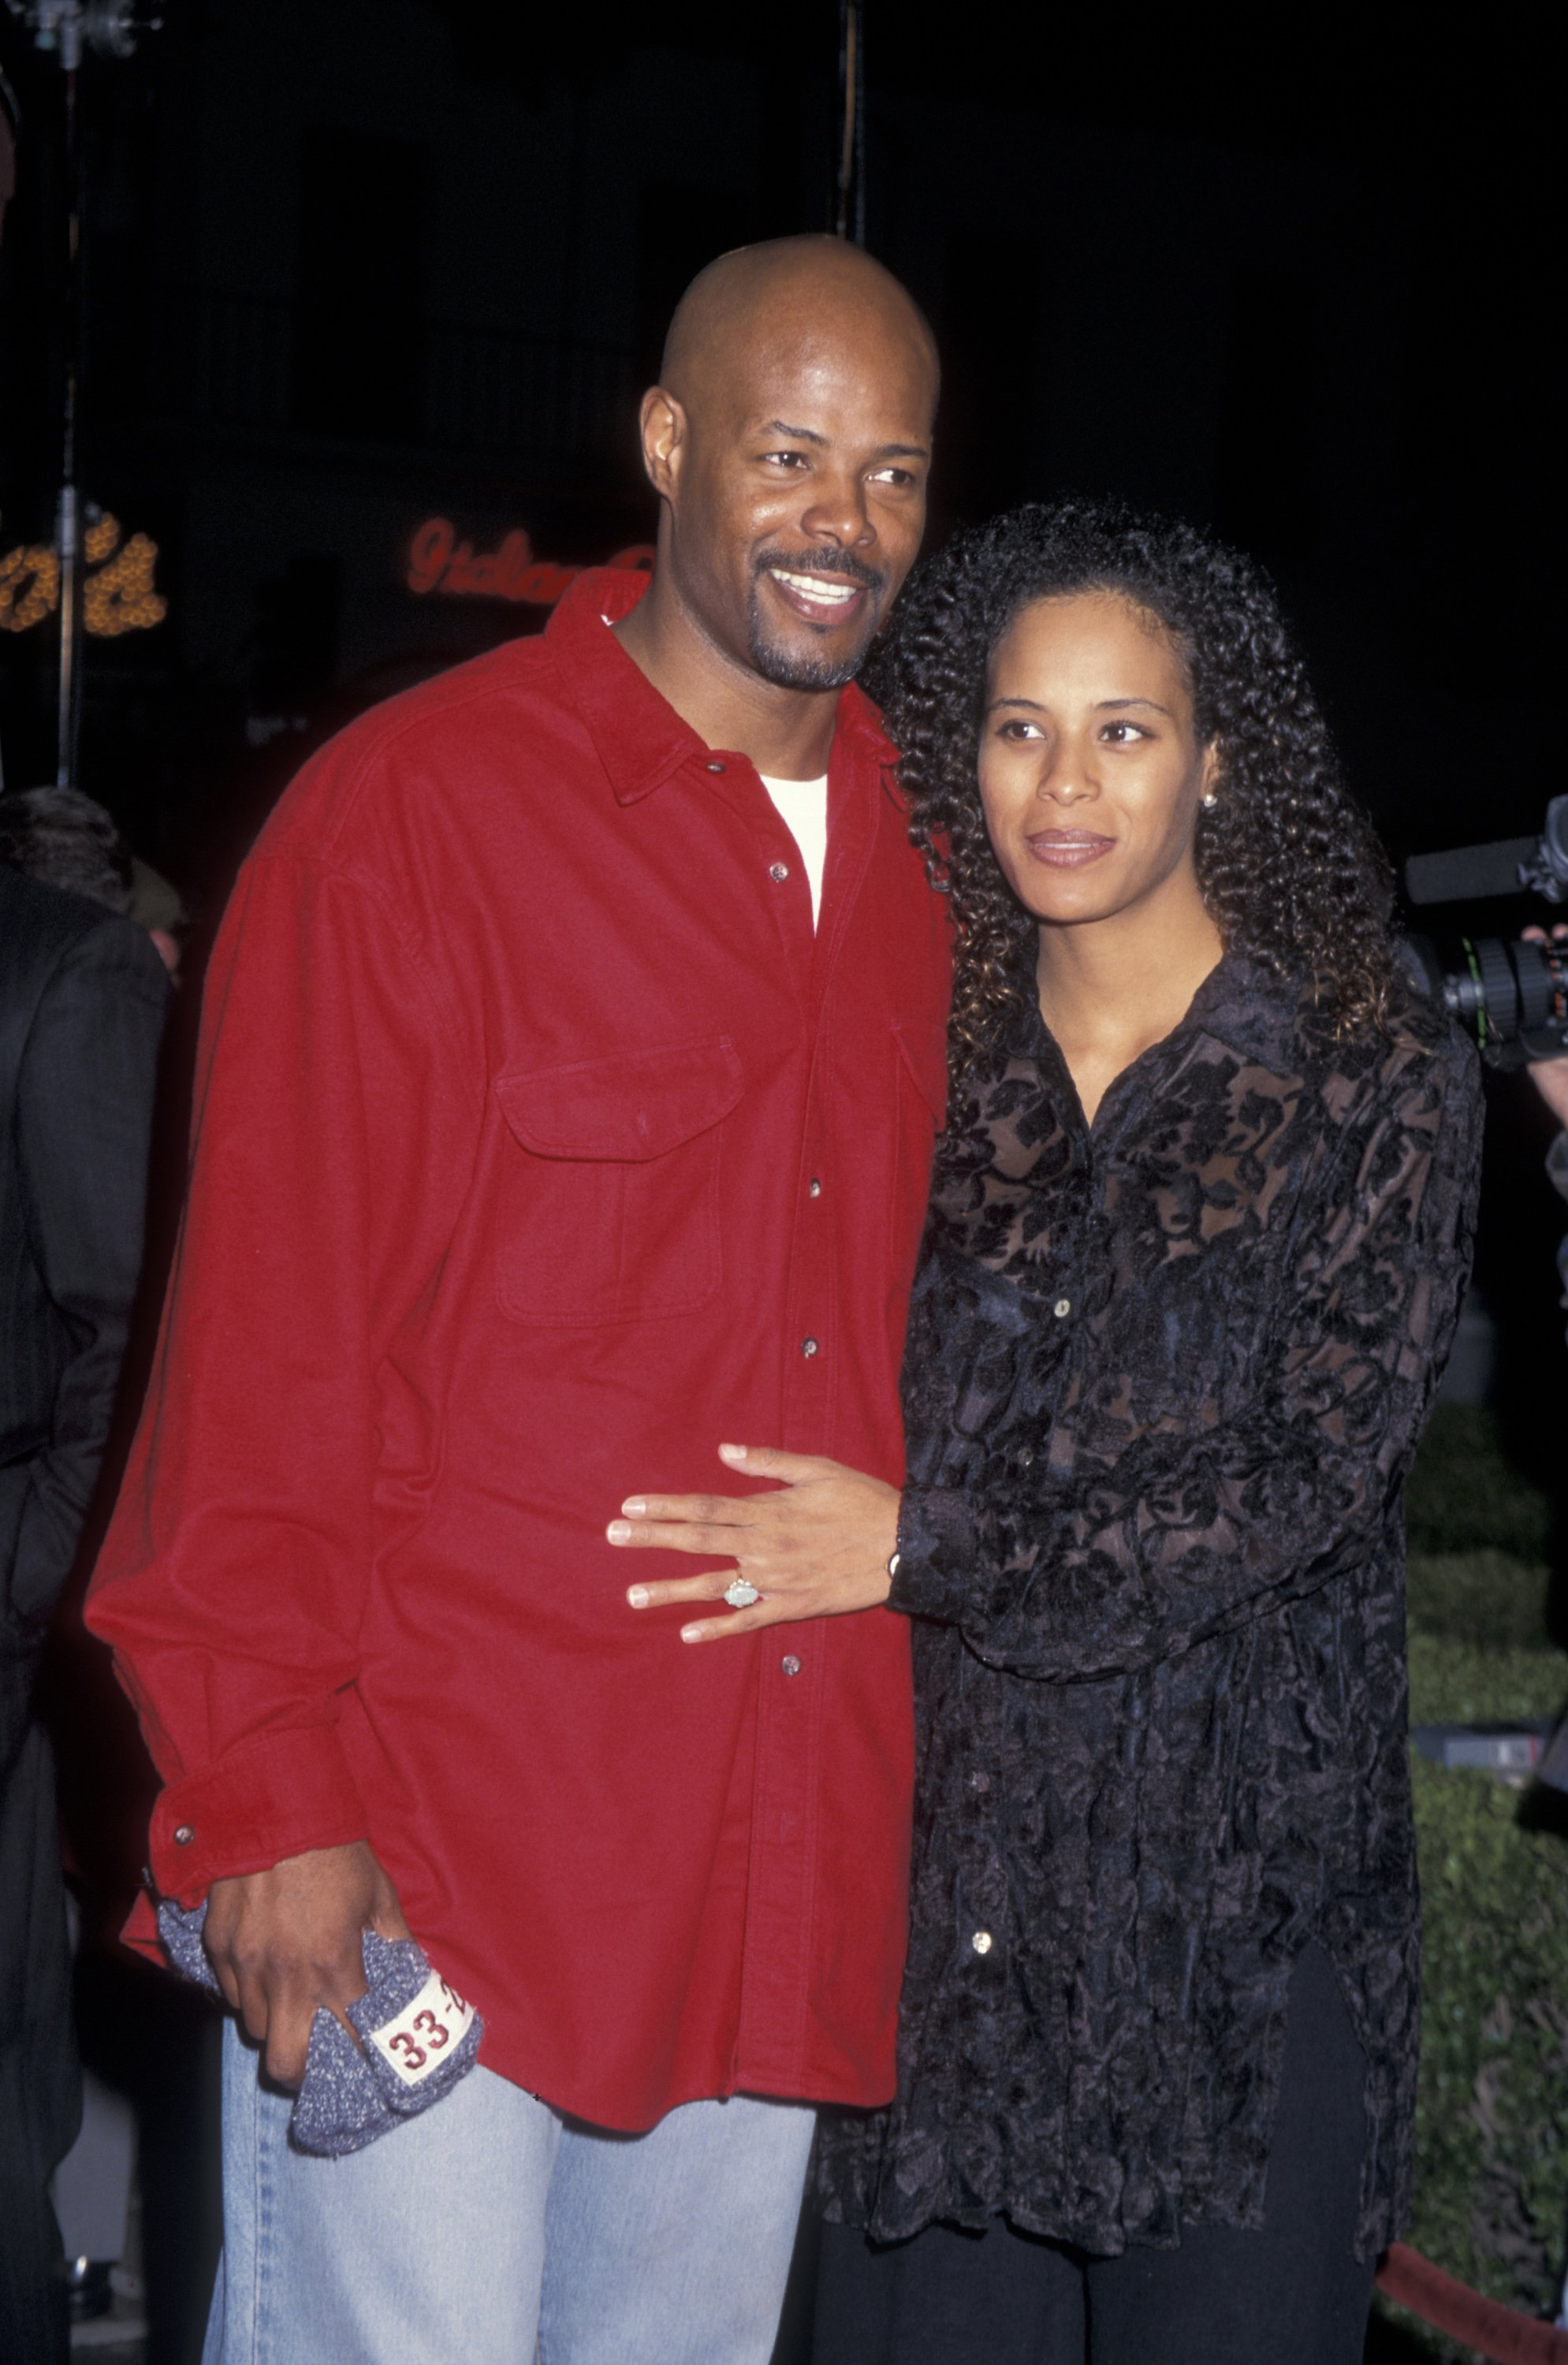 Keenen Ivory Wayans and wife Daphne Polk attending the world premiere of 'Executive Decision' on March 11, 1996 | Photo: Getty Images